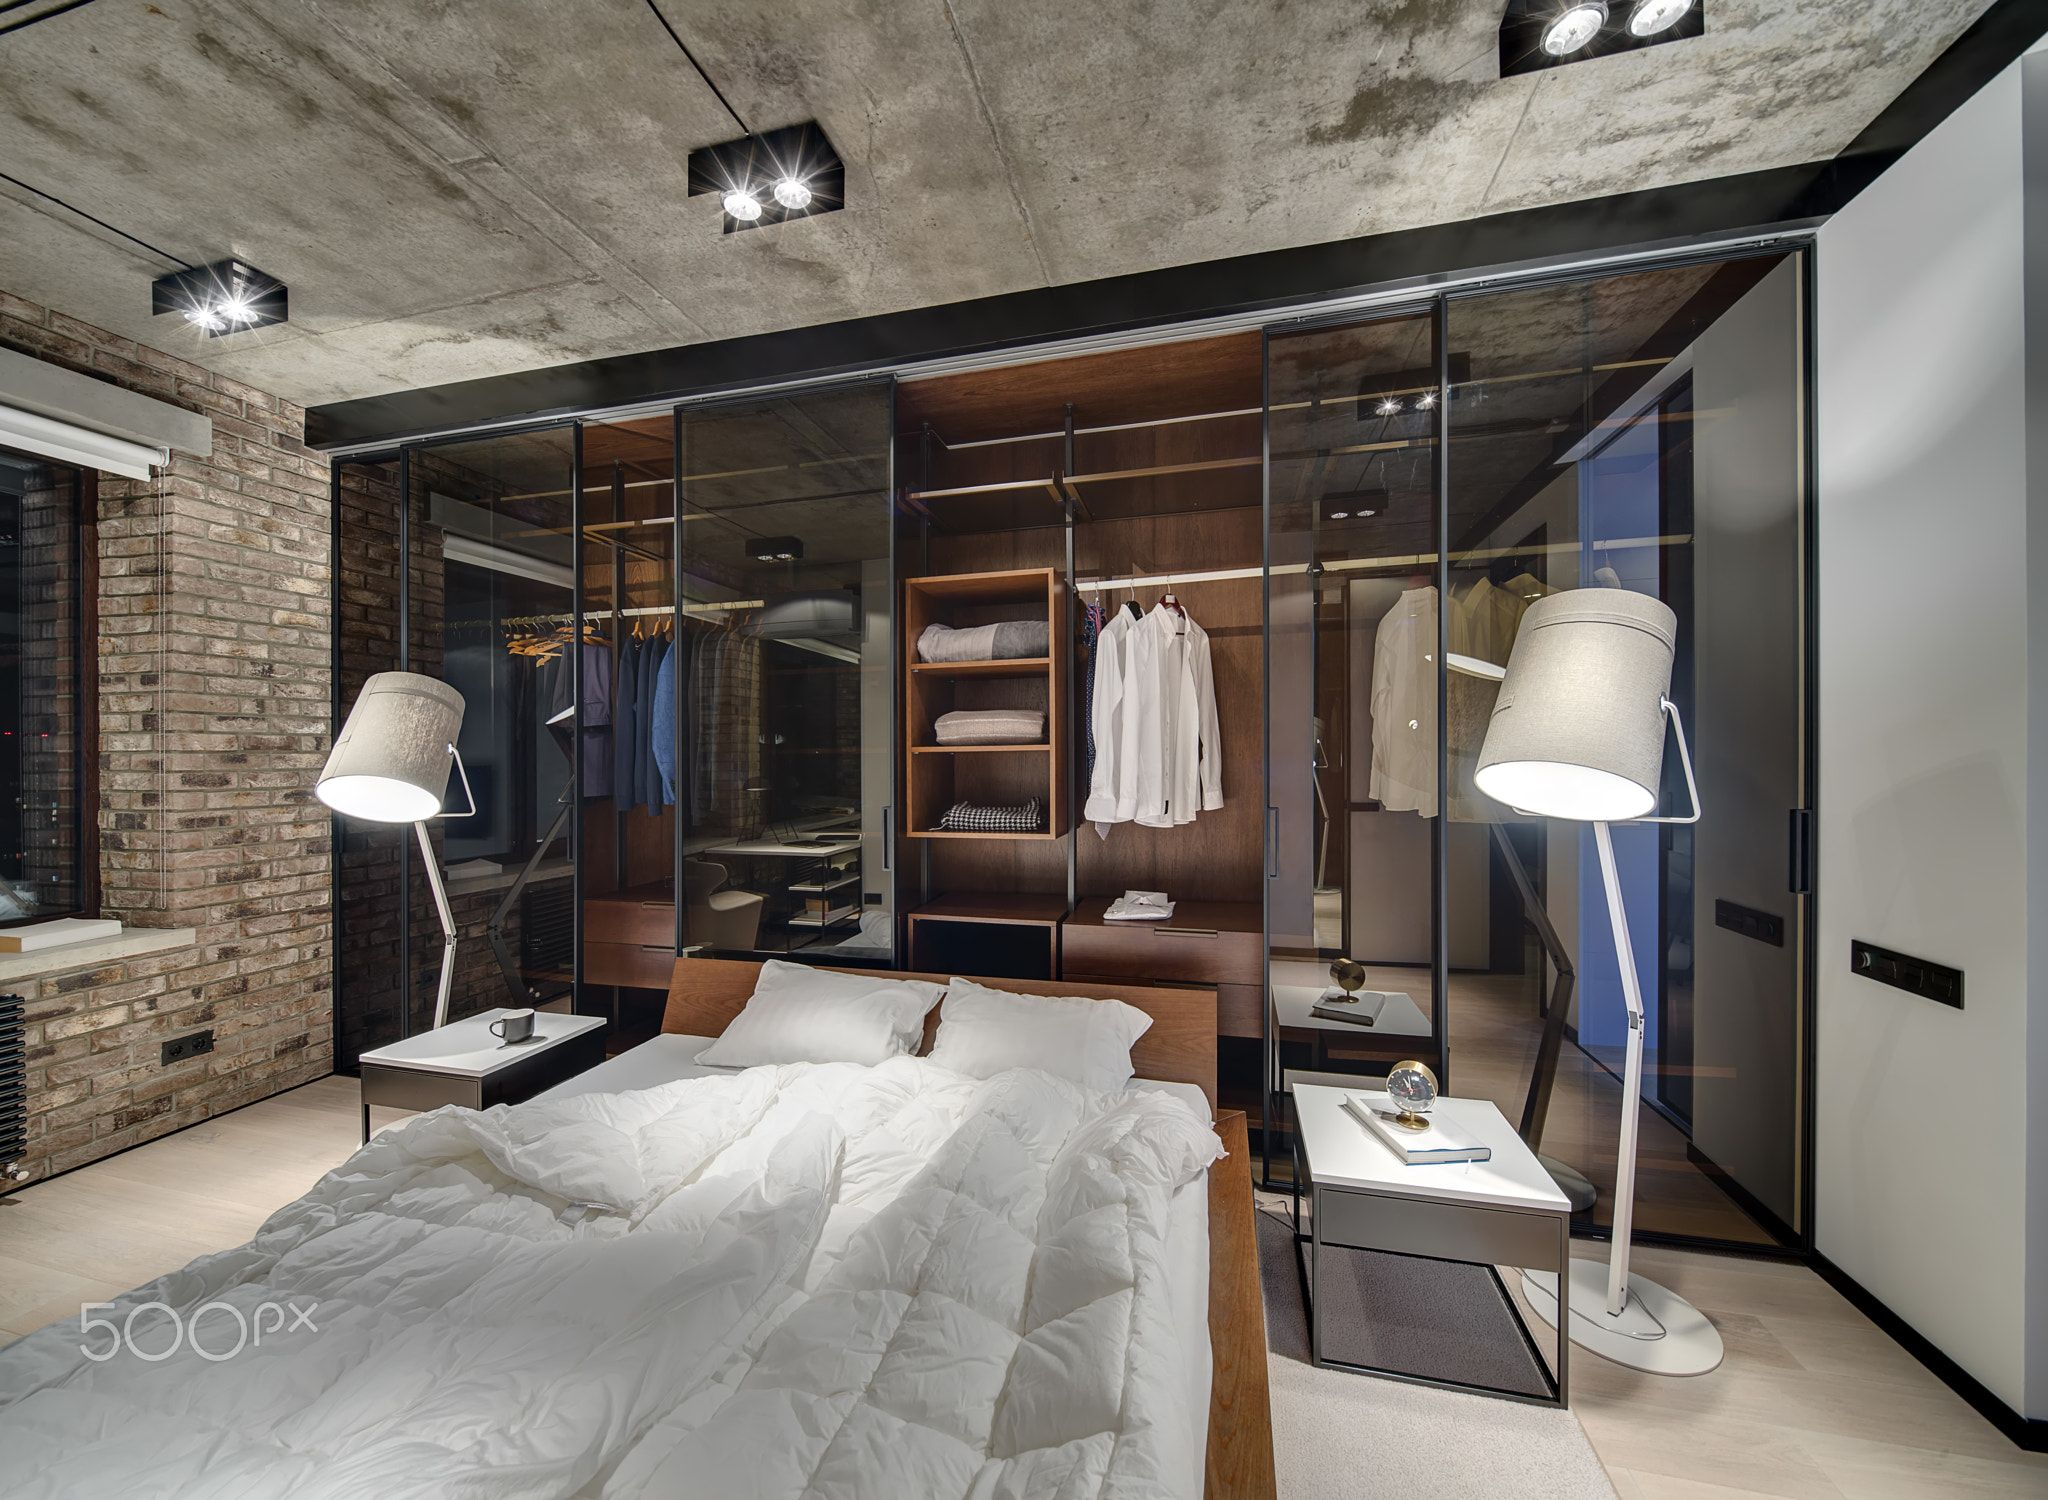 Bedroom In Loft Style Loft Style Bedroom With Brick Wall And